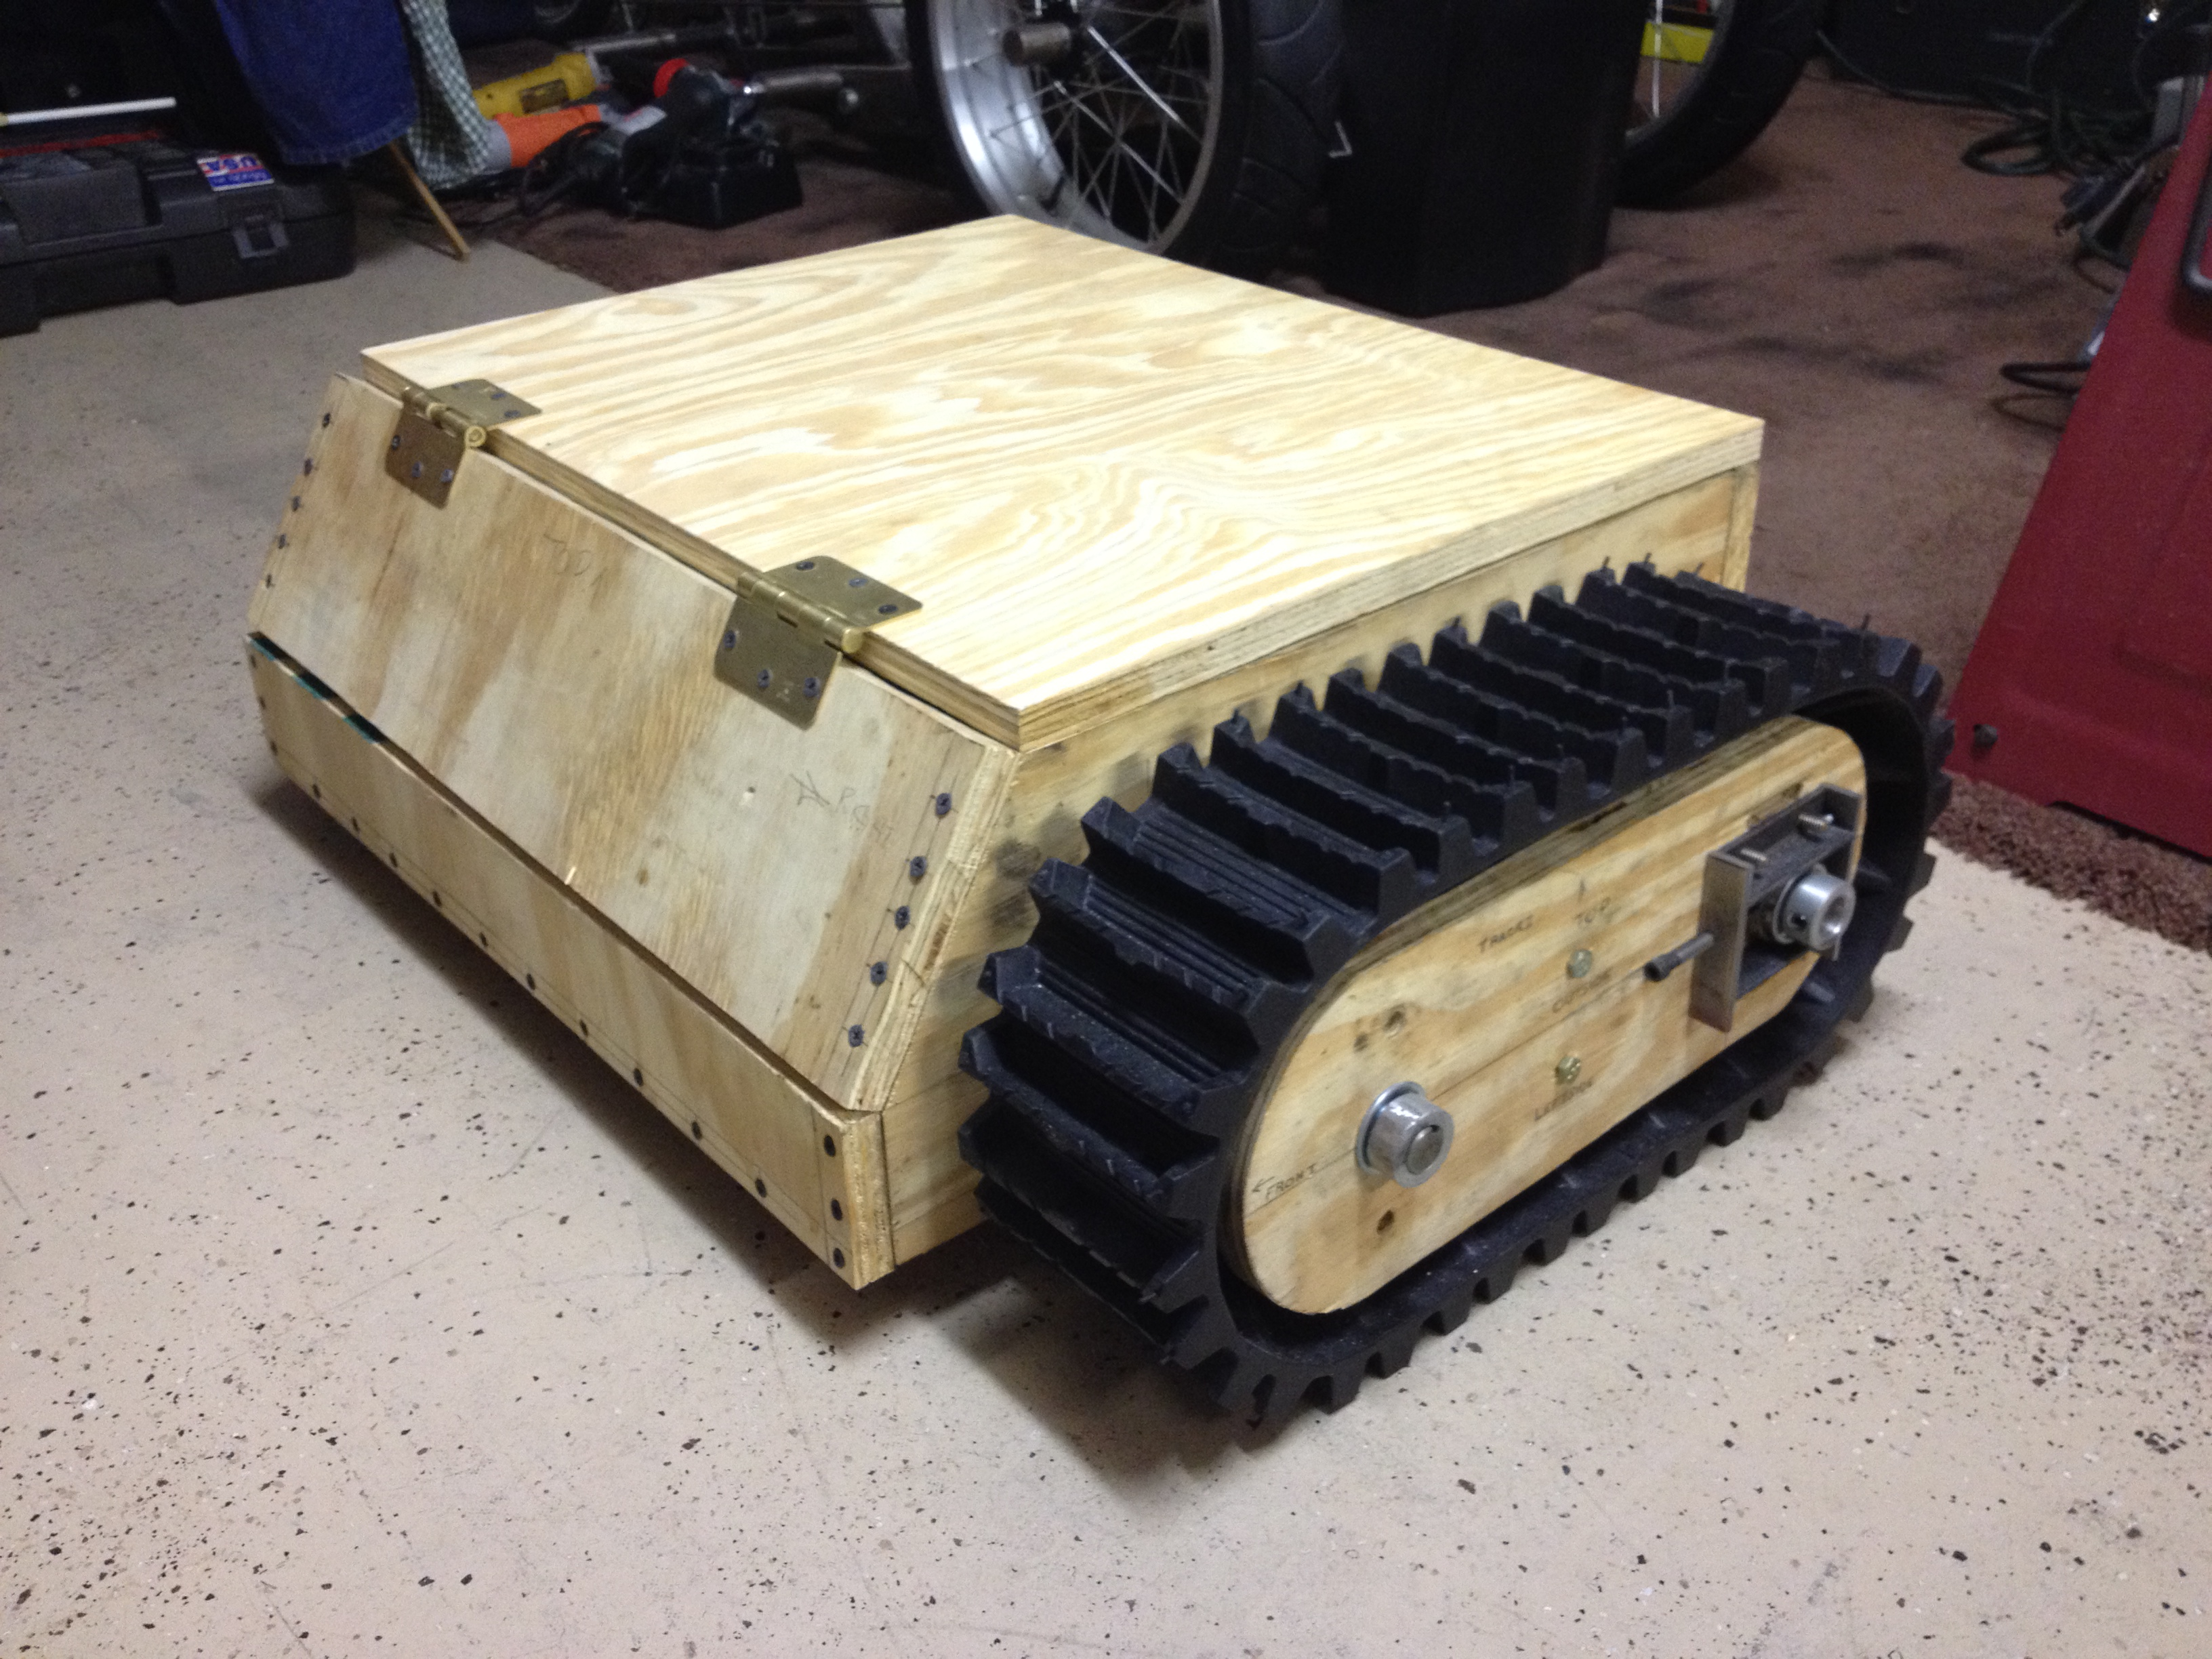 Picture of Chassis Build